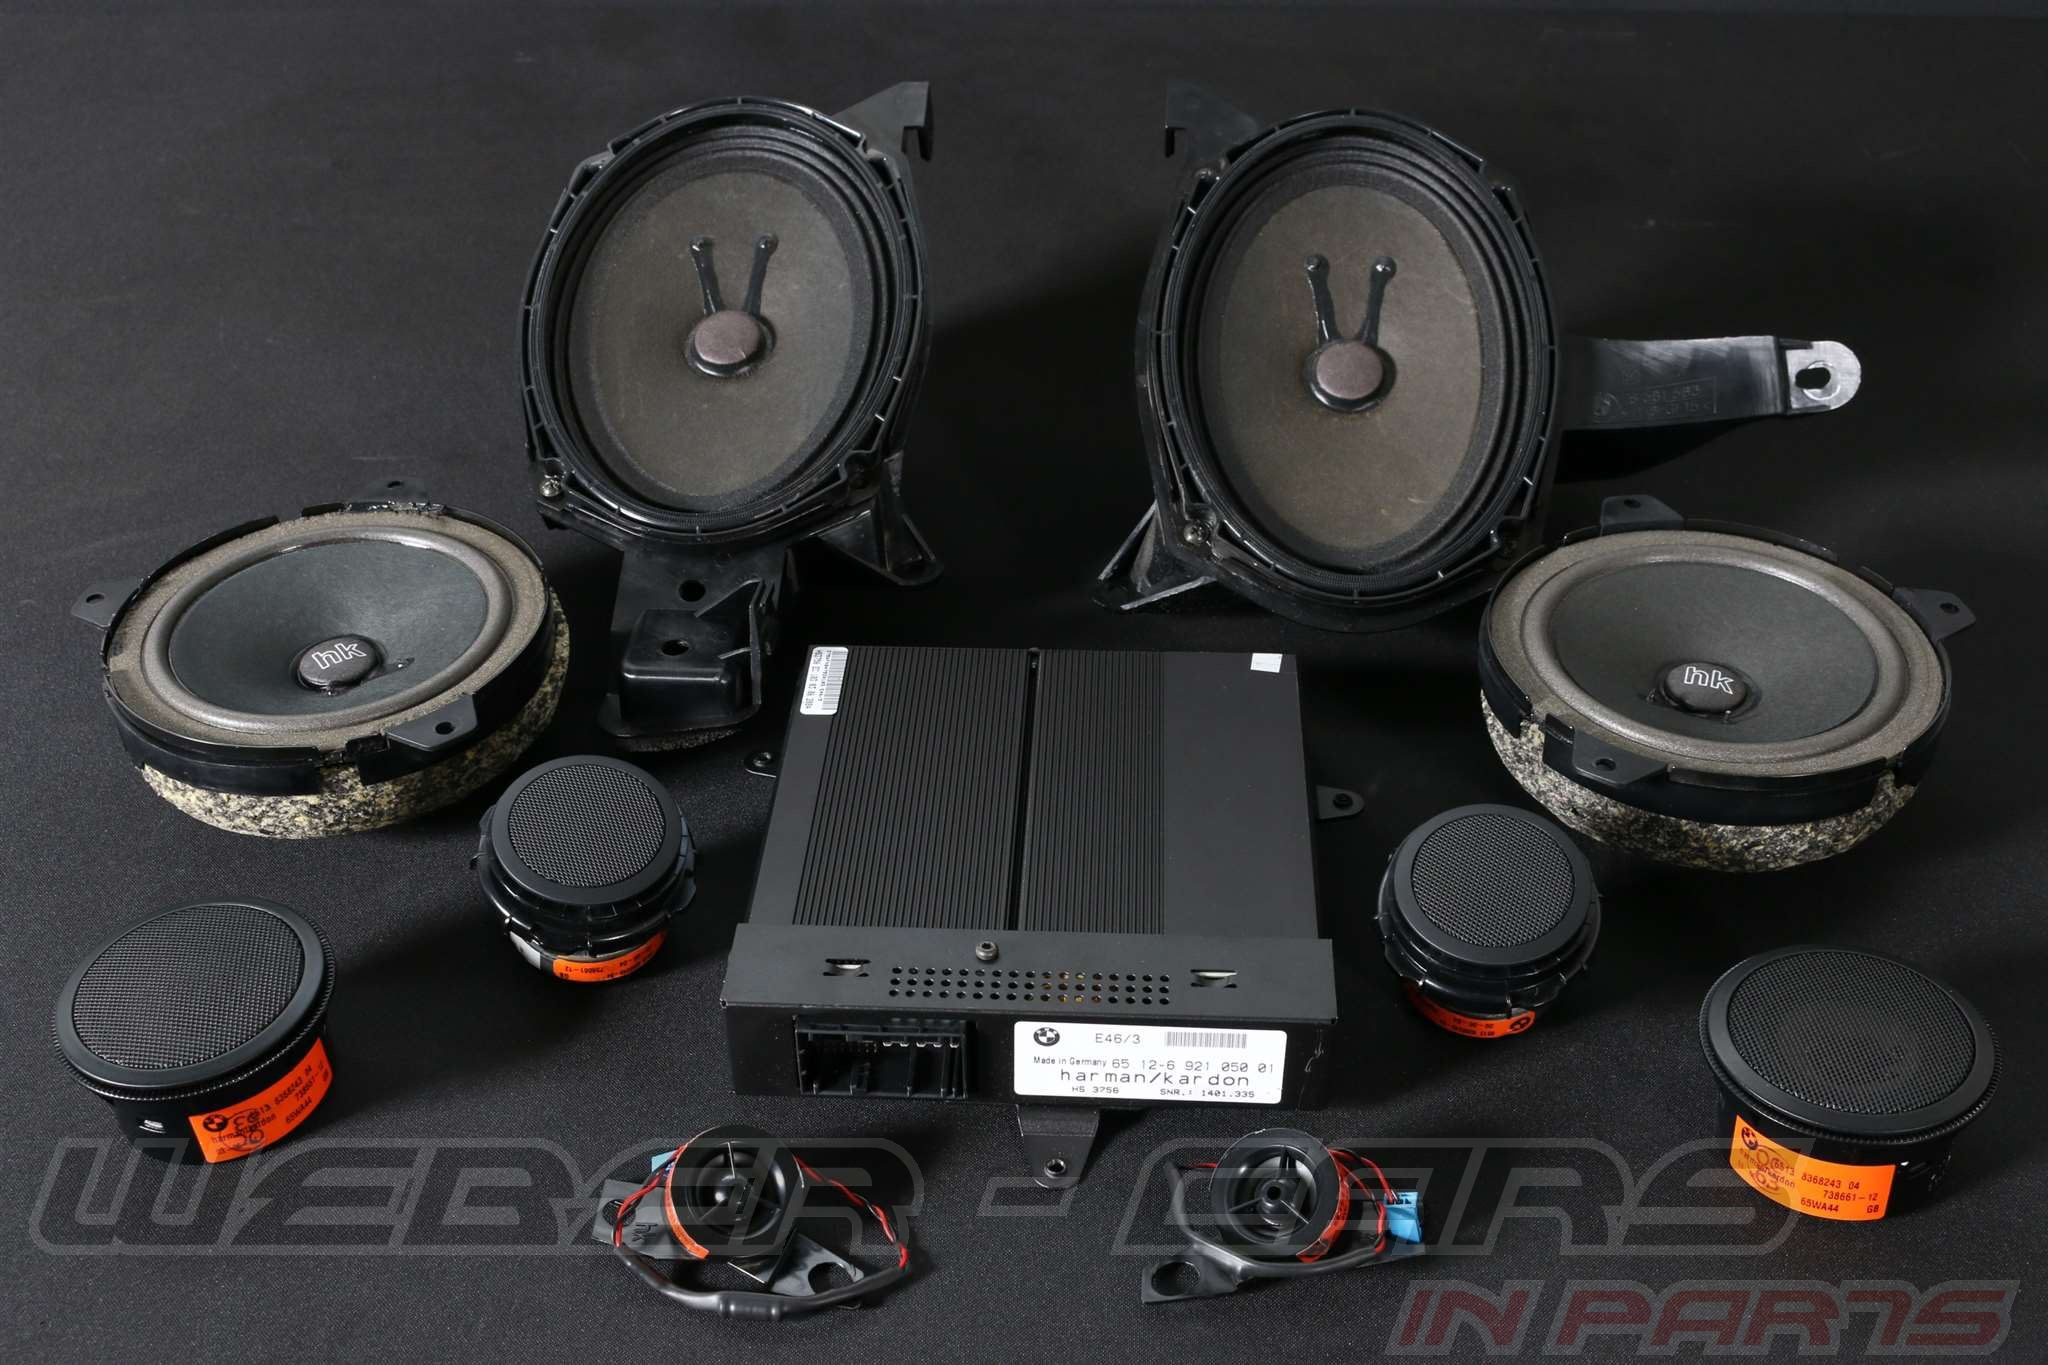 bmw 3er e46 touring harman kardon hk soundsystem. Black Bedroom Furniture Sets. Home Design Ideas